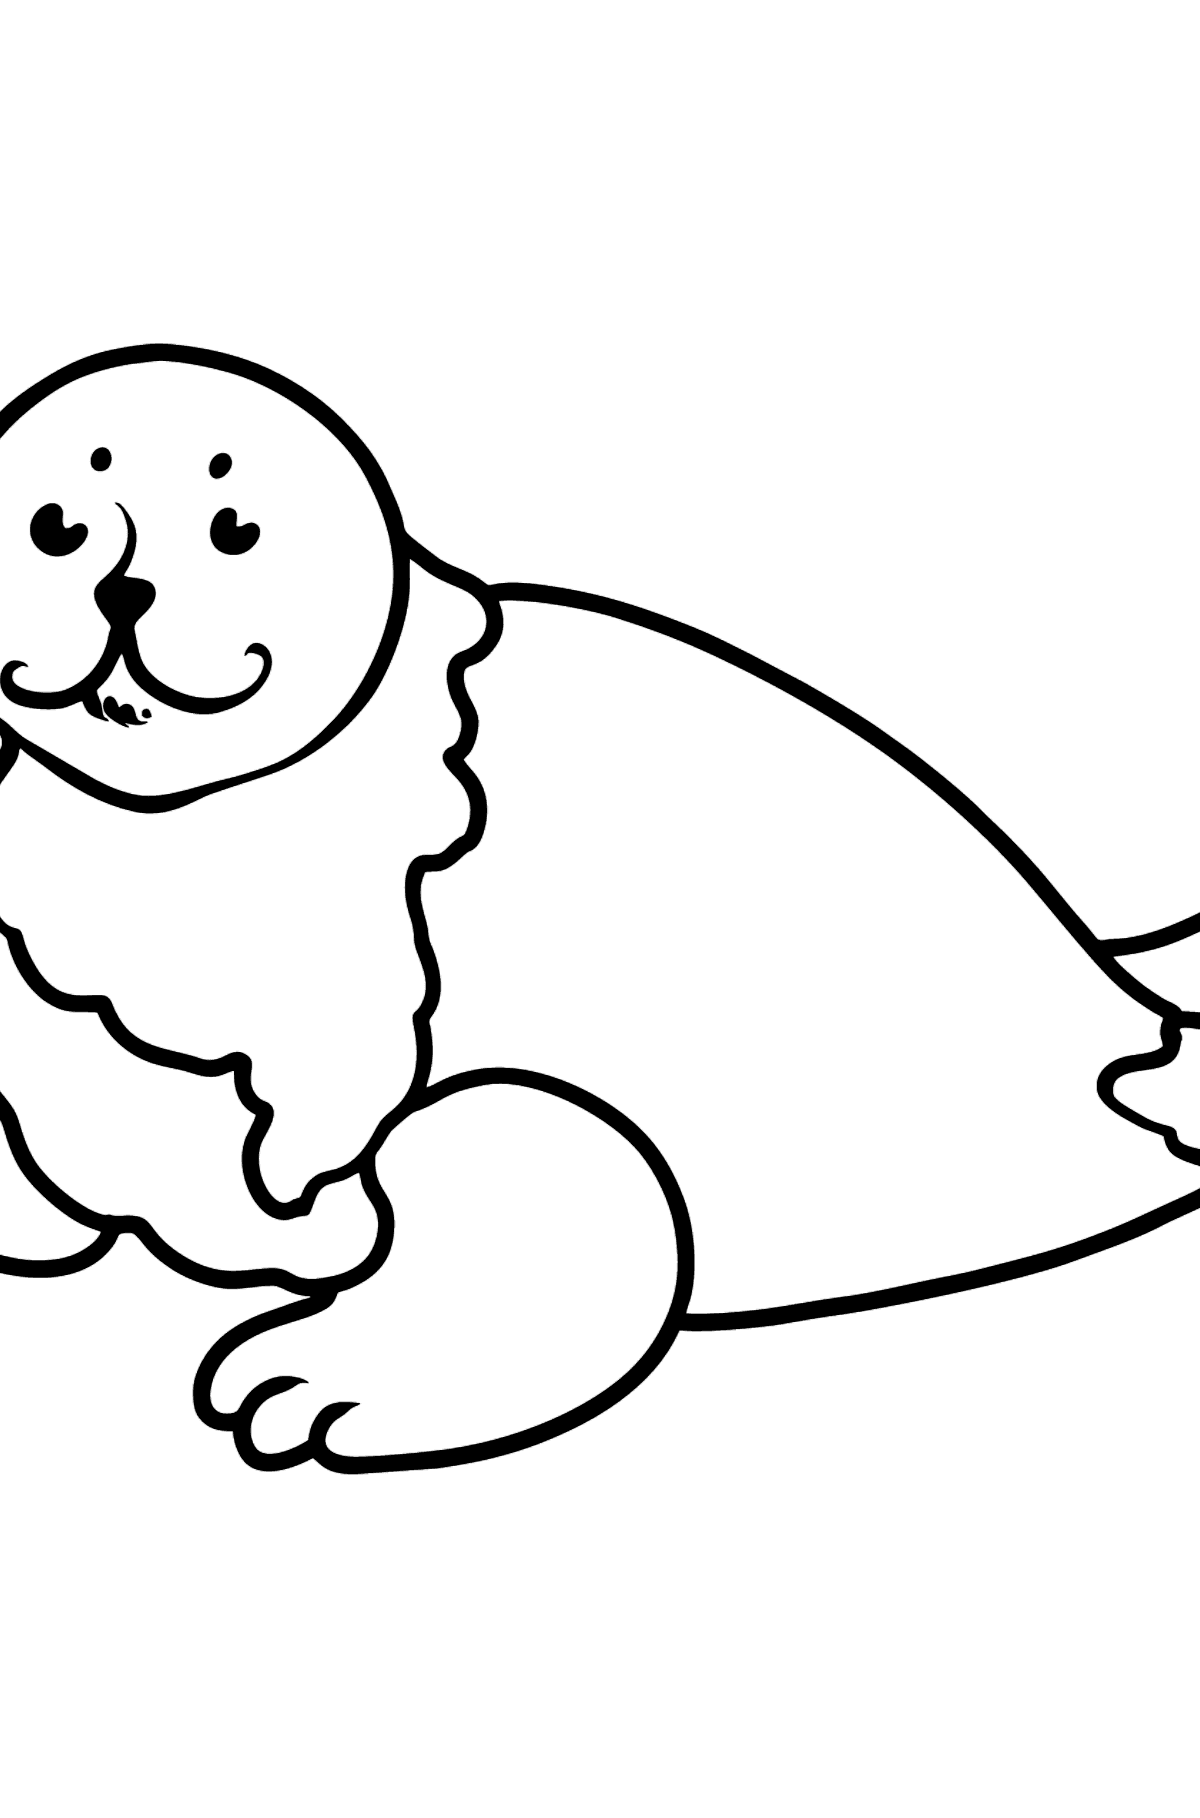 Seal coloring page - Coloring Pages for Kids